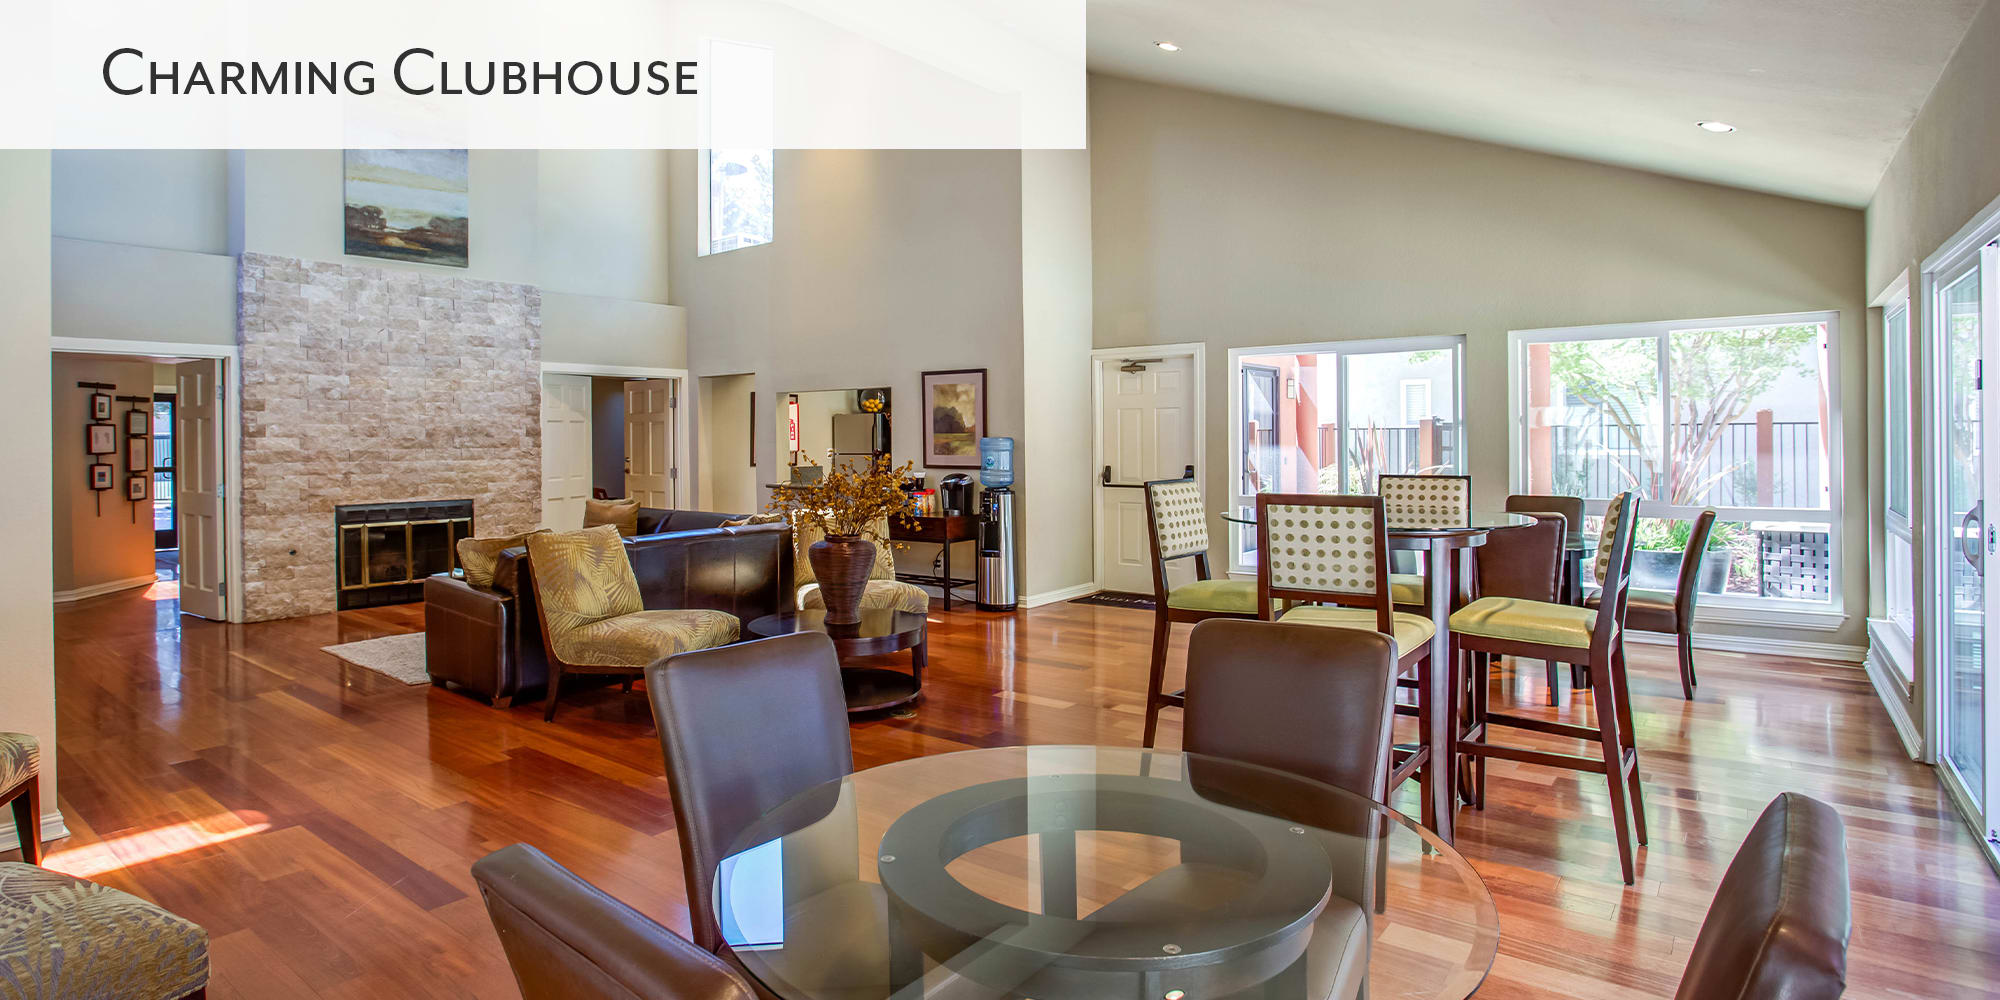 Charming clubhouse at Valley Plaza Villages in Pleasanton, California